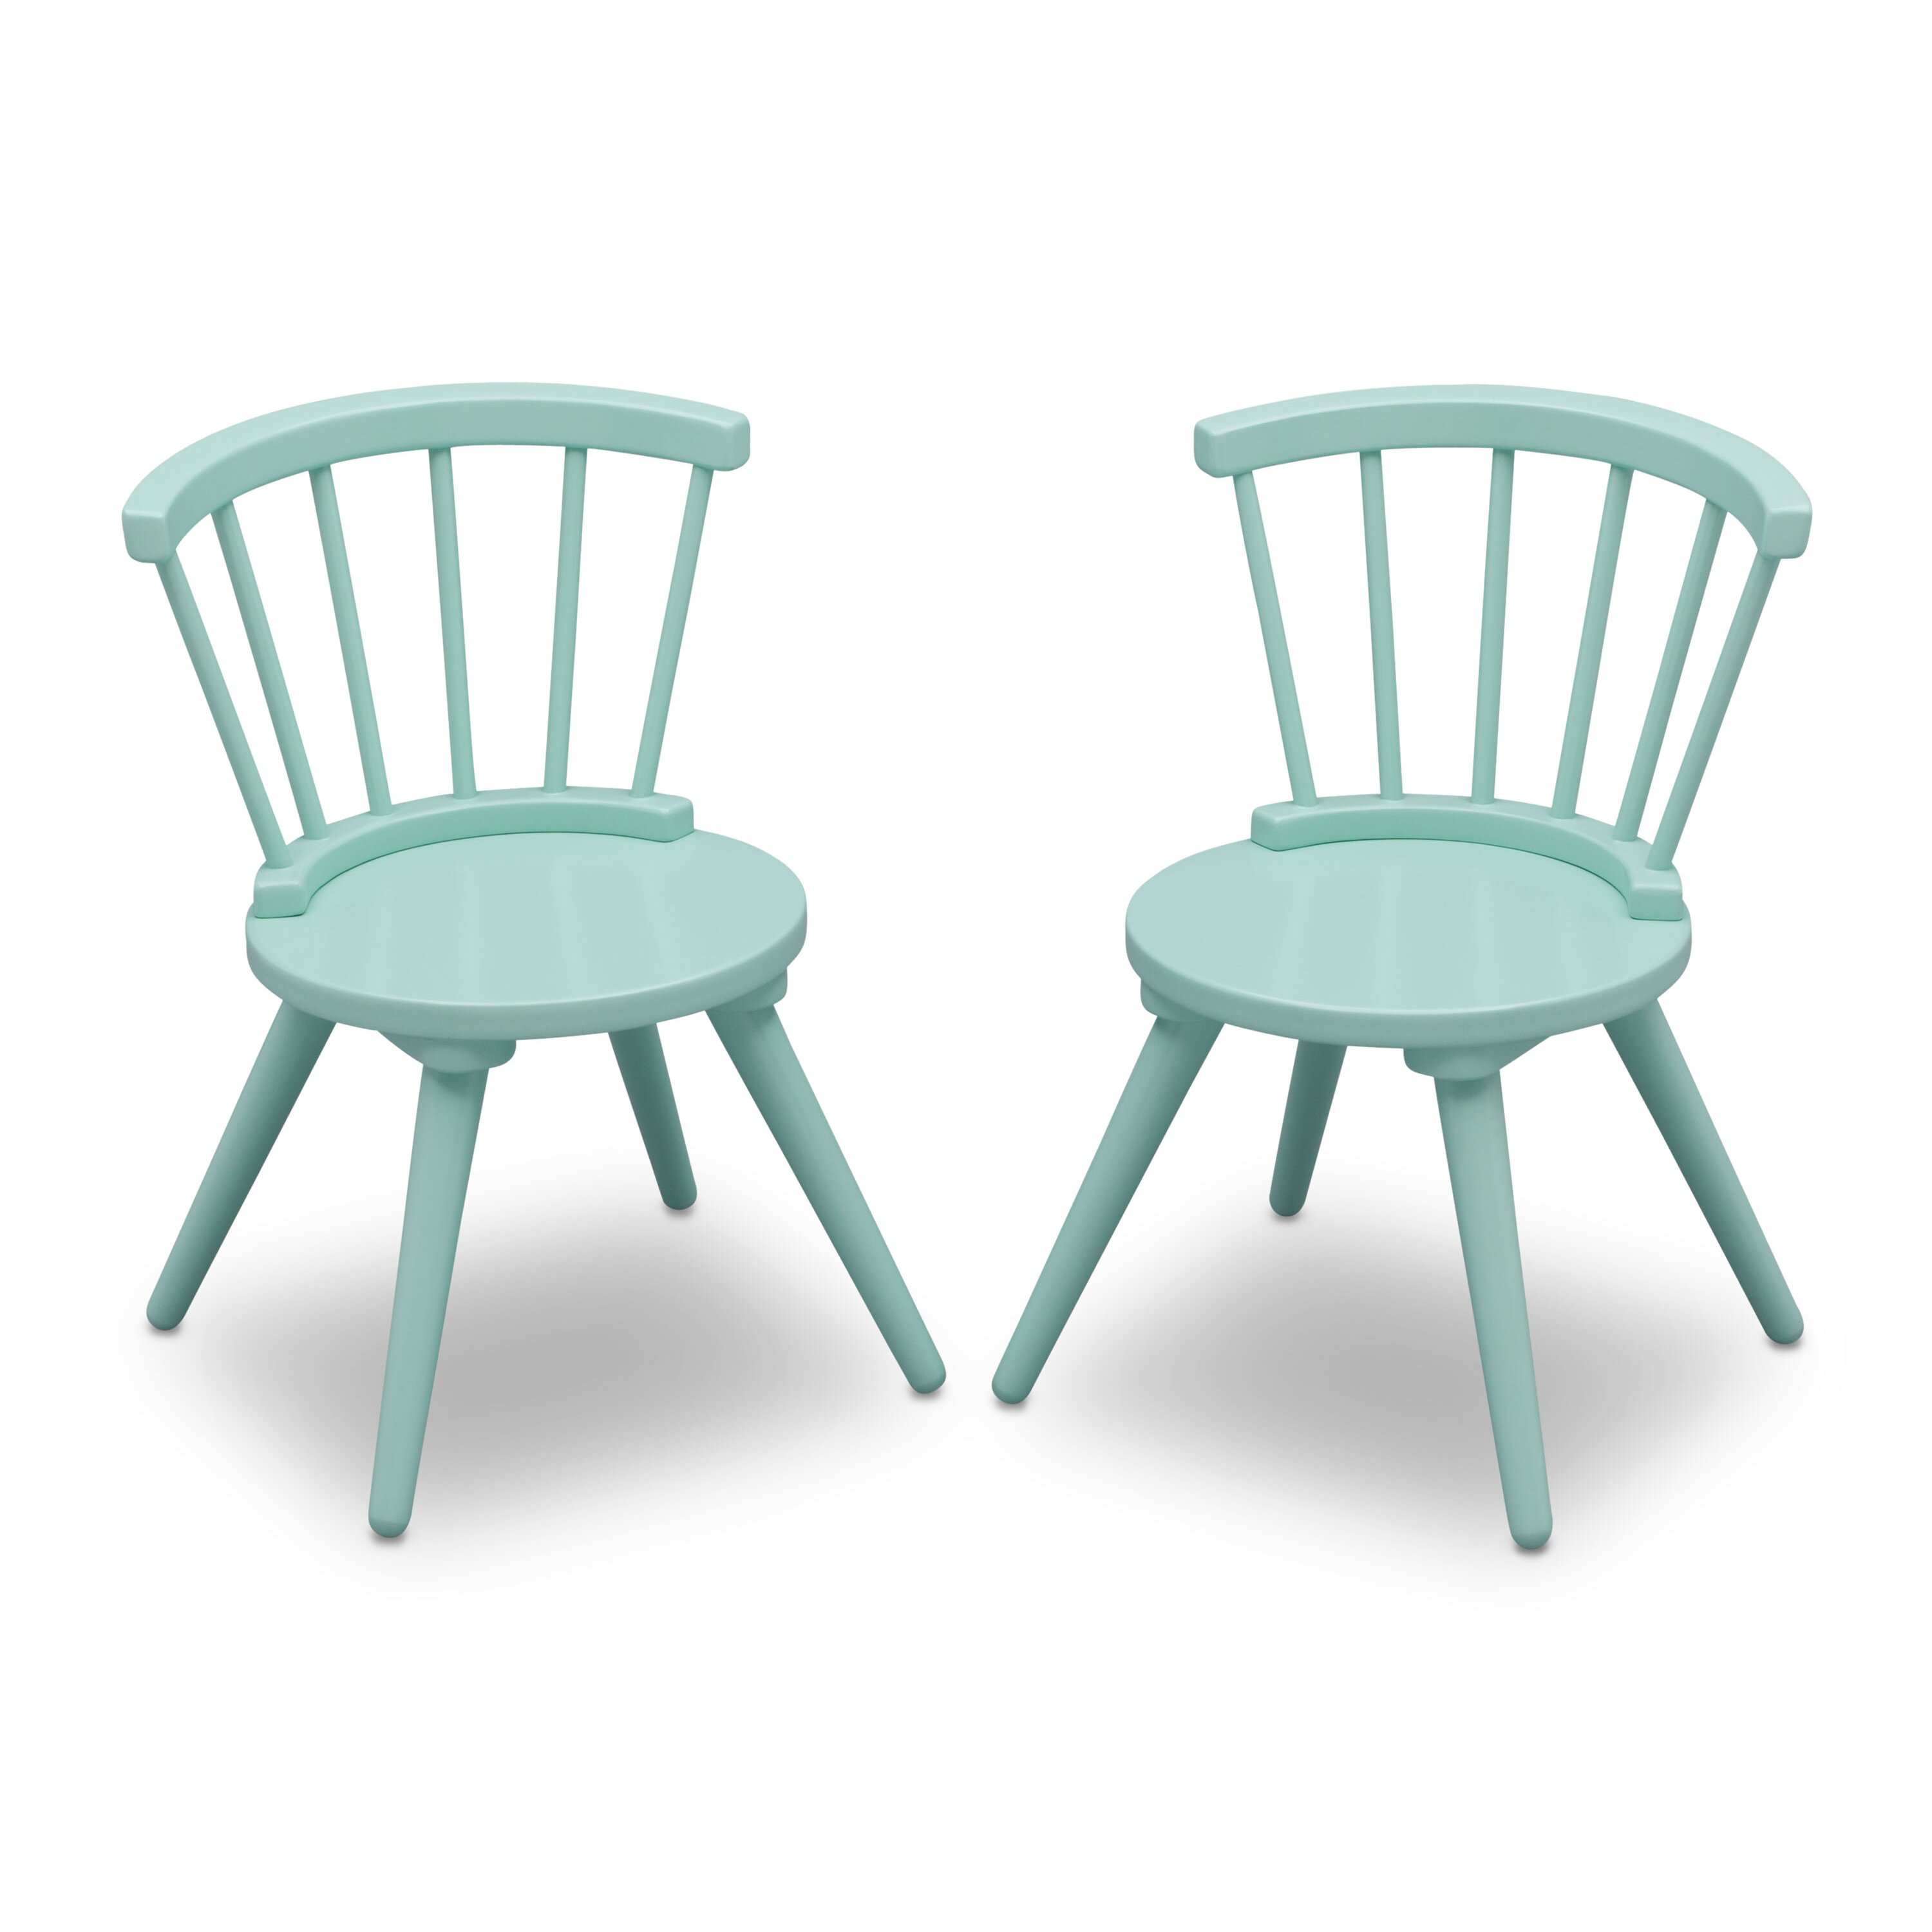 Plastic Table Chair Set Viv Rae Justine Windsor 3 Piece Table And Chair Set By Delta